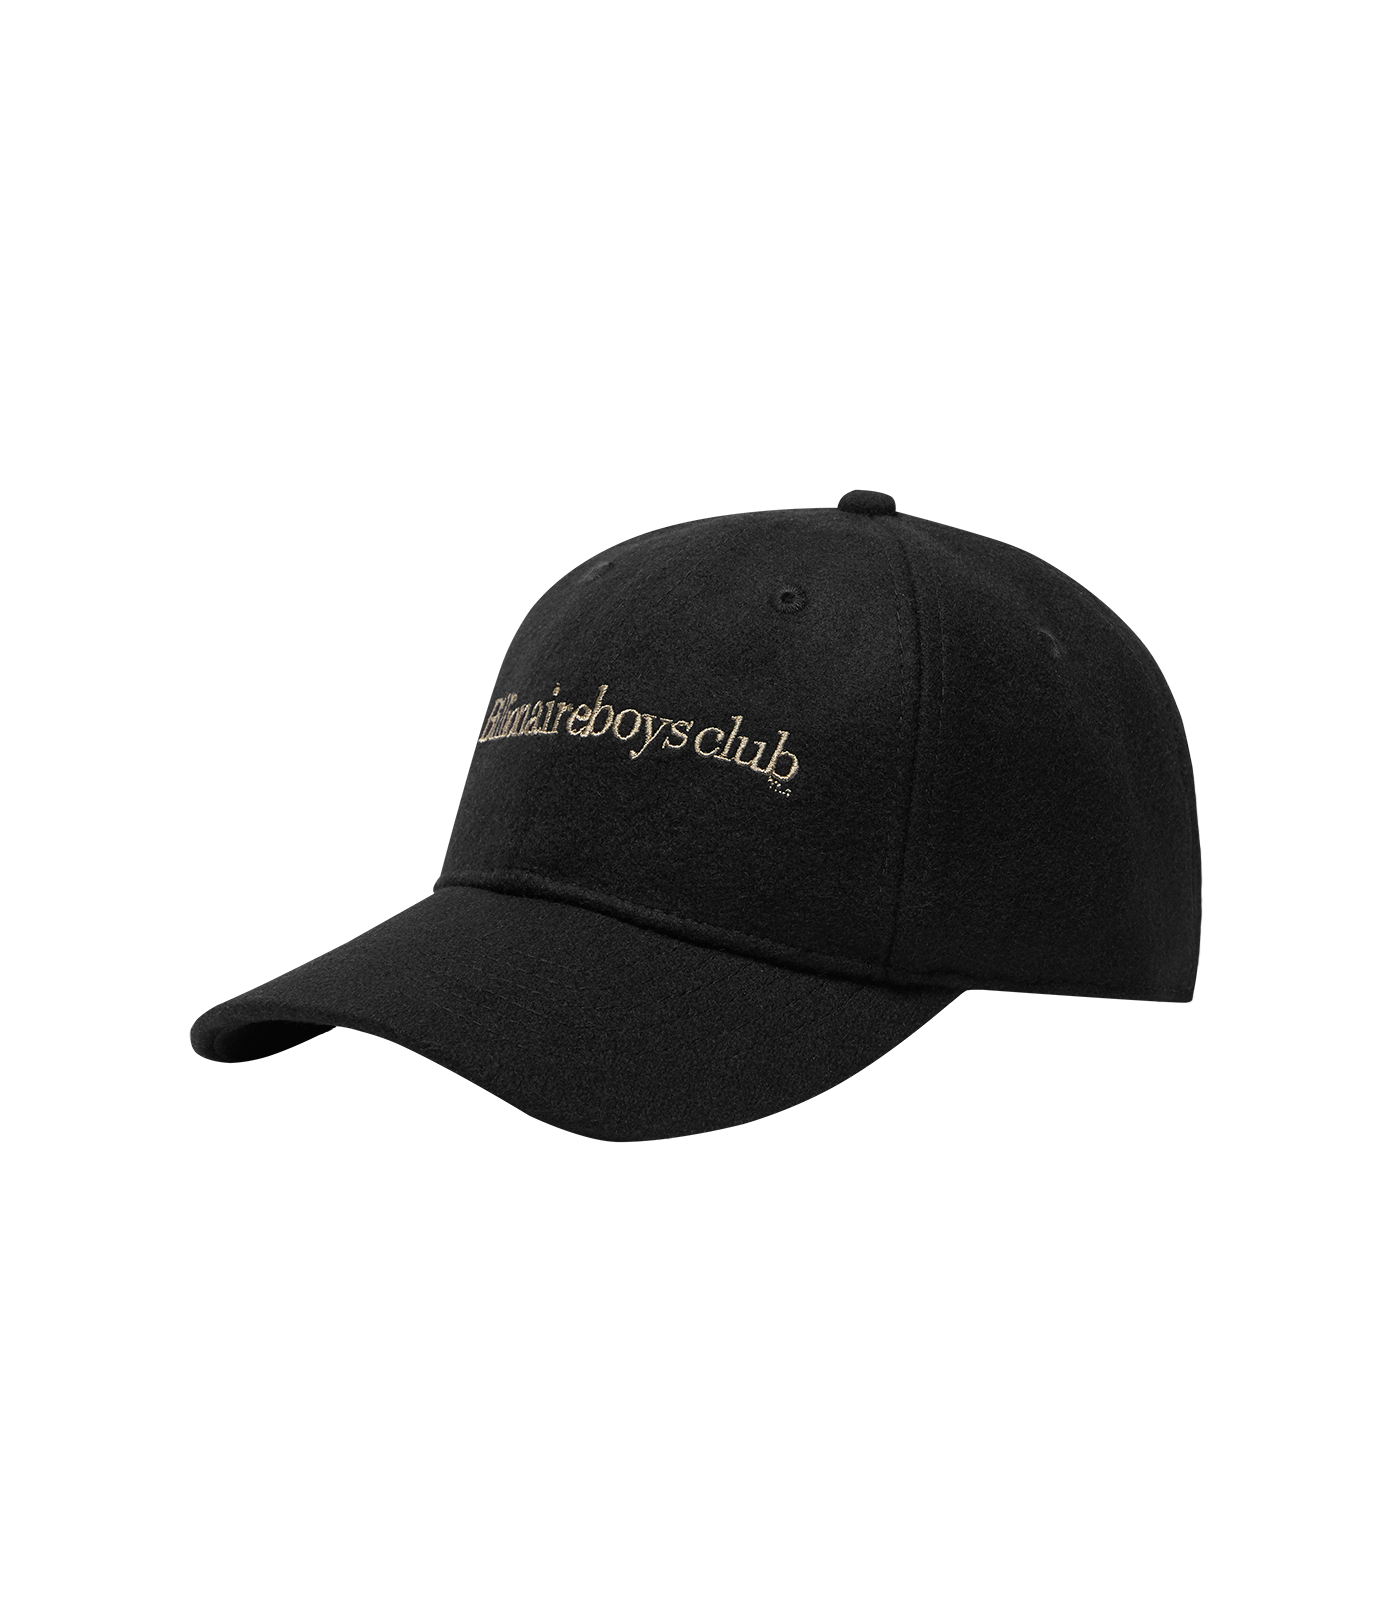 EMBROIDERED WOOL CURVED VISOR CAP - BLACK